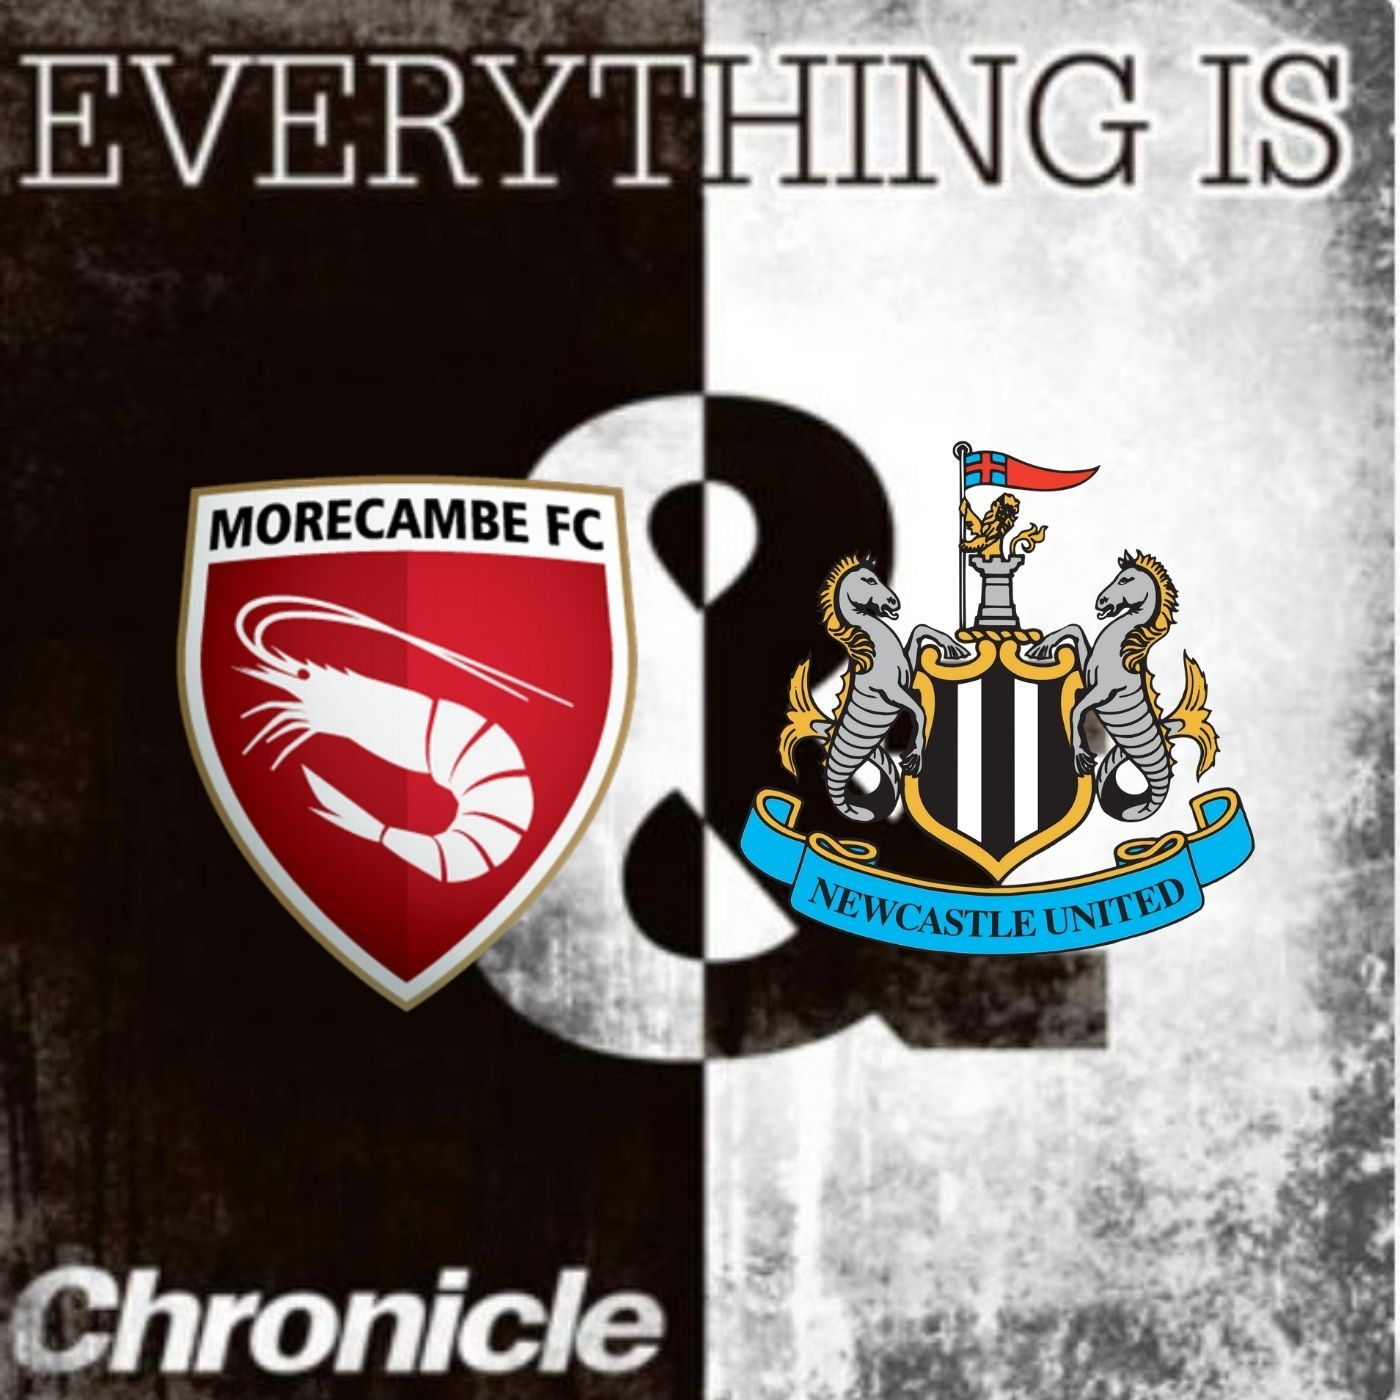 Morecambe vs Newcastle United - the EFL Cup Preview